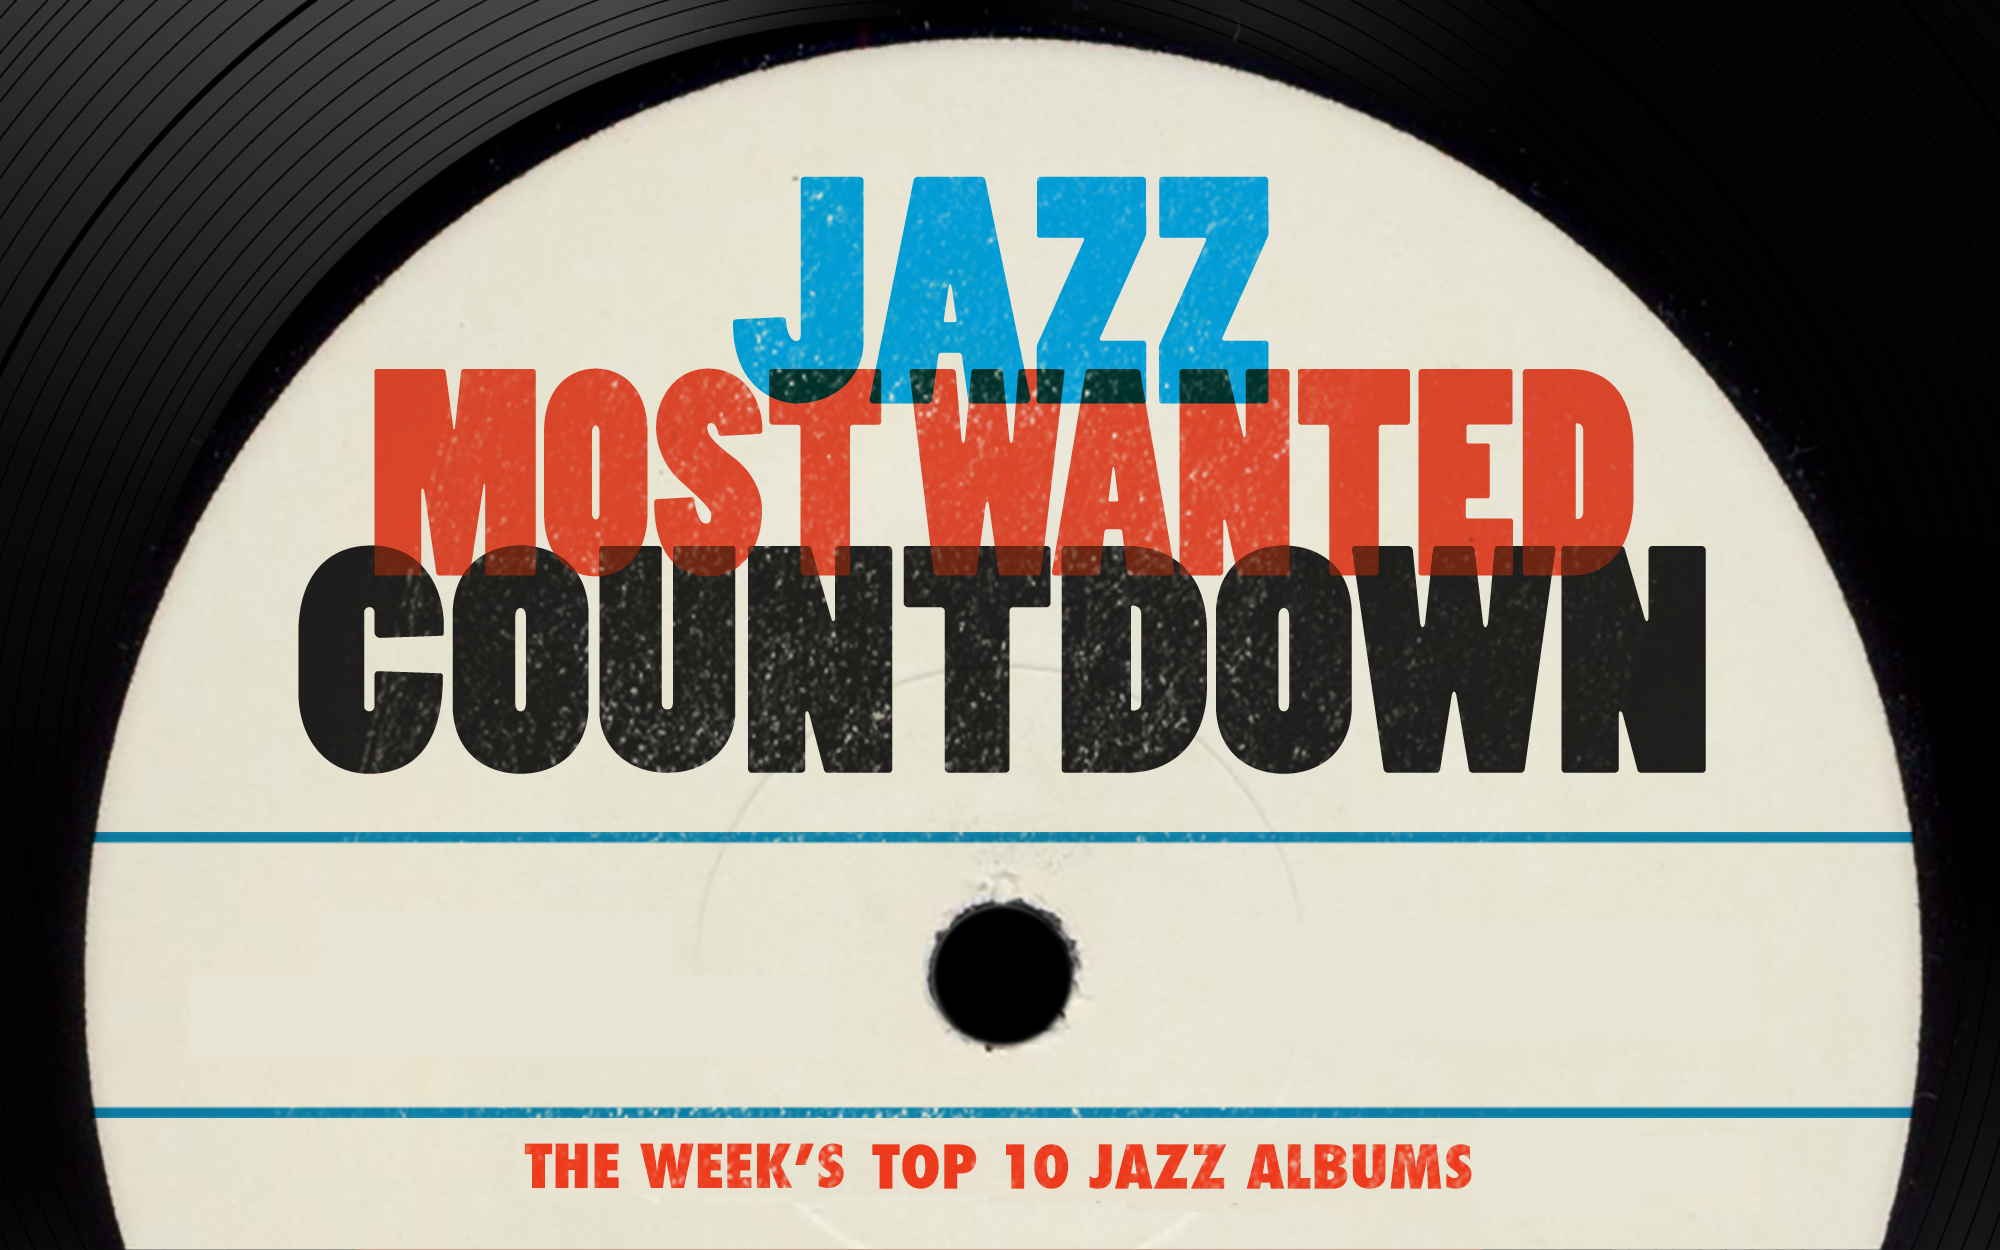 Jazz_most_wanted_countdown_generic_small